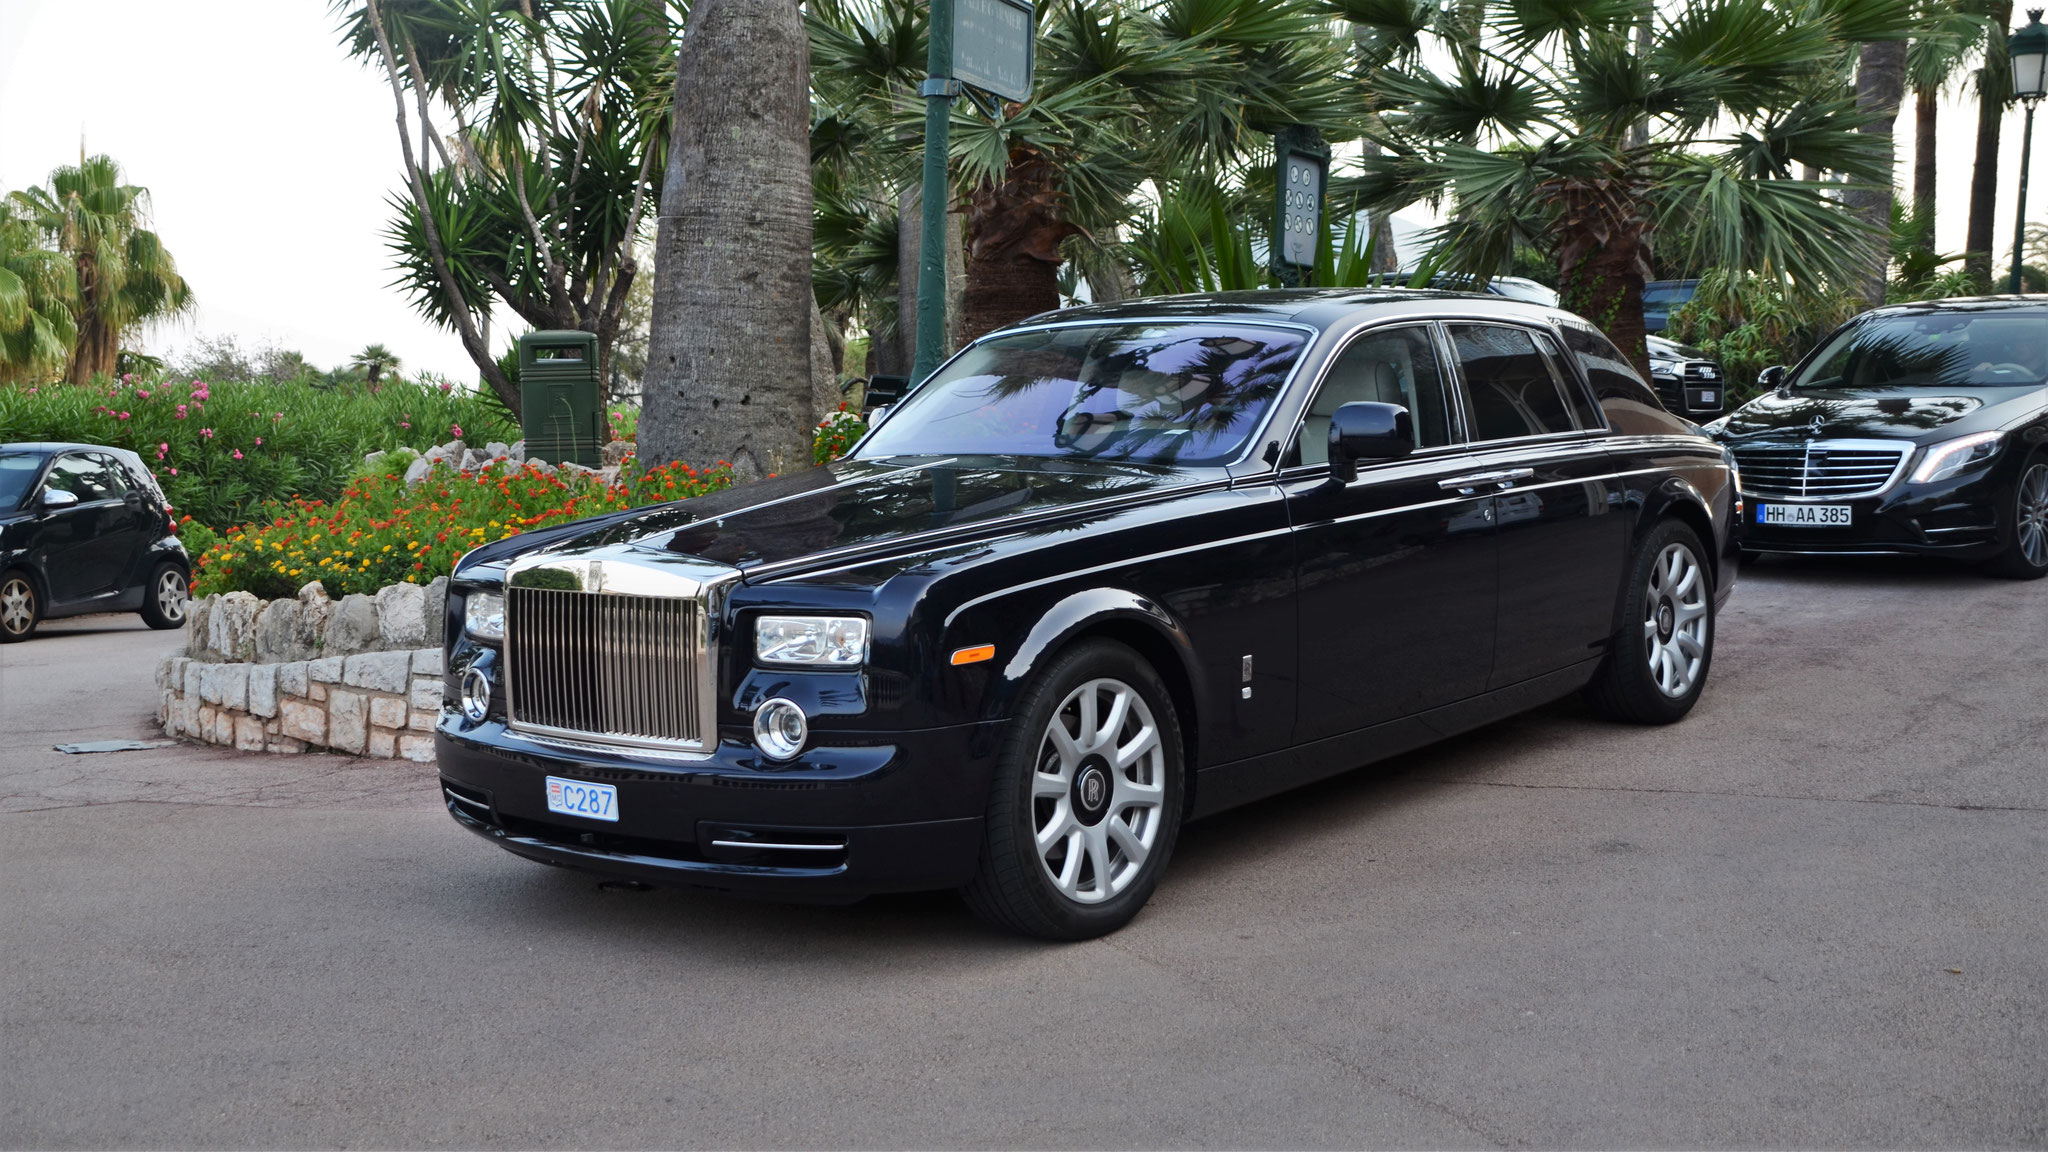 Rolls Royce Phantom - C287 (MC)